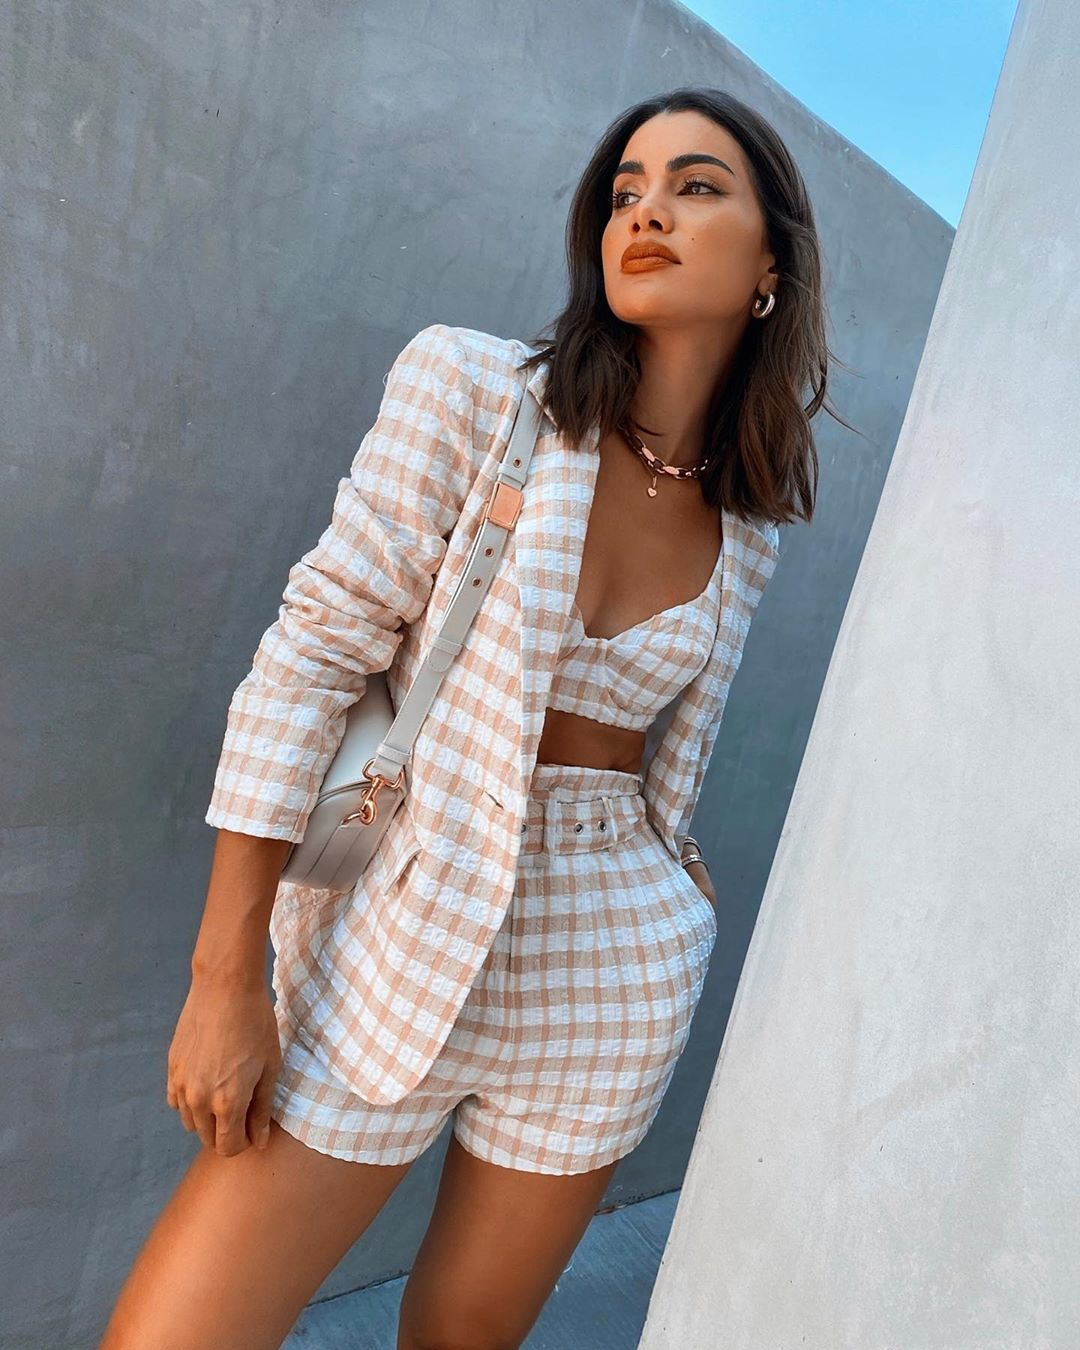 Camila Coelho donning a White beige checks printed Camila Coelho crop top with a very low cut sweetheart neckline and spaghetti straps